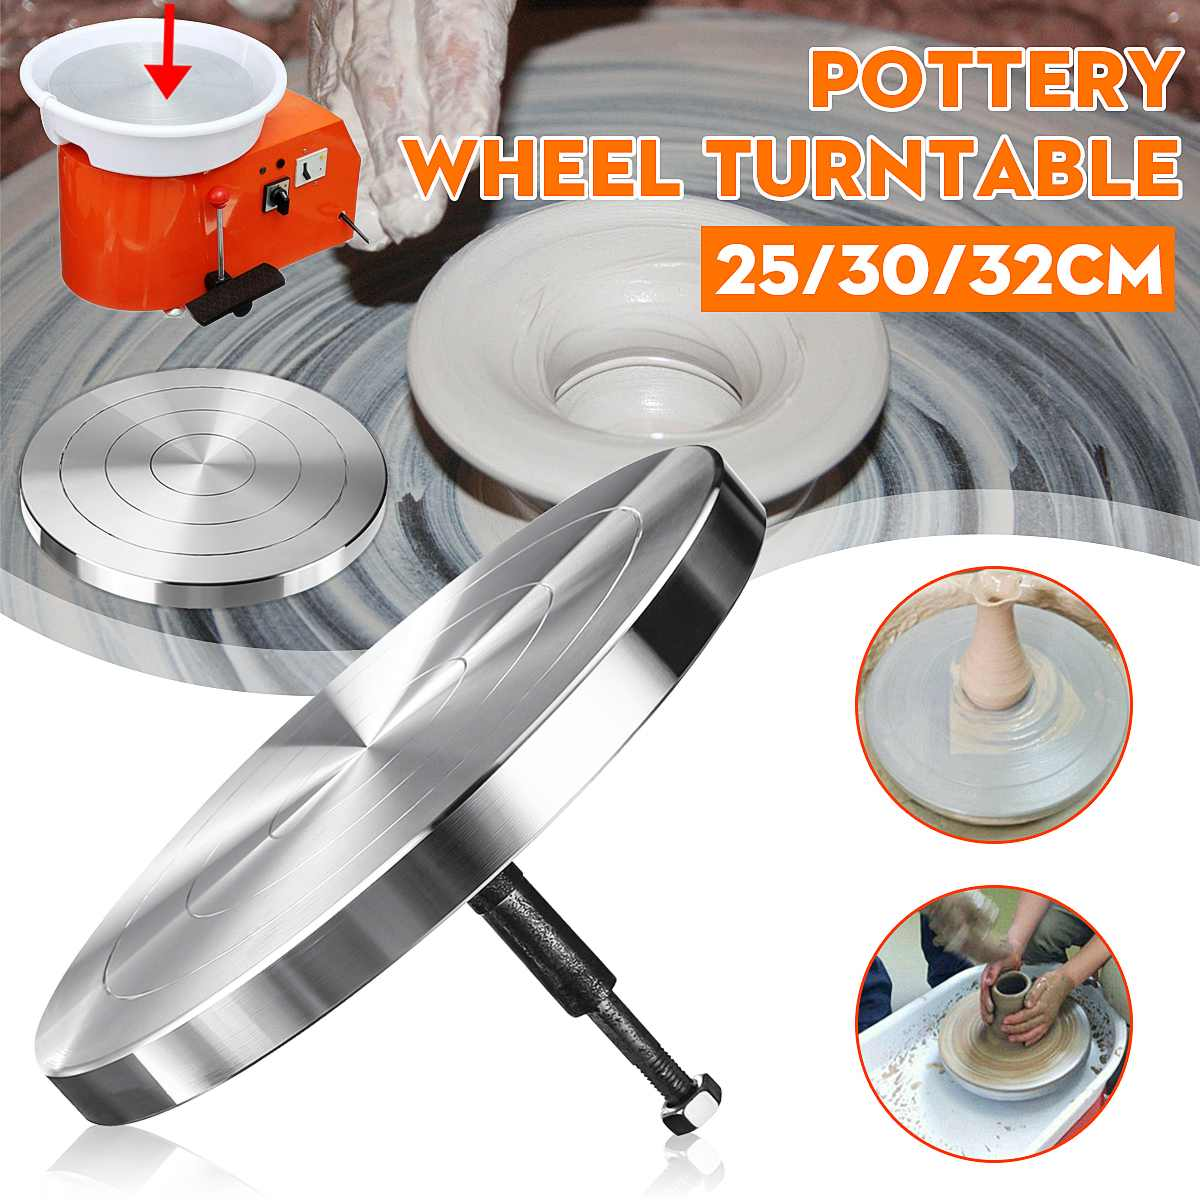 25//30CM Pottery Banding Wheel Metal Turntable Turnplate Clay Sculpture Modelling